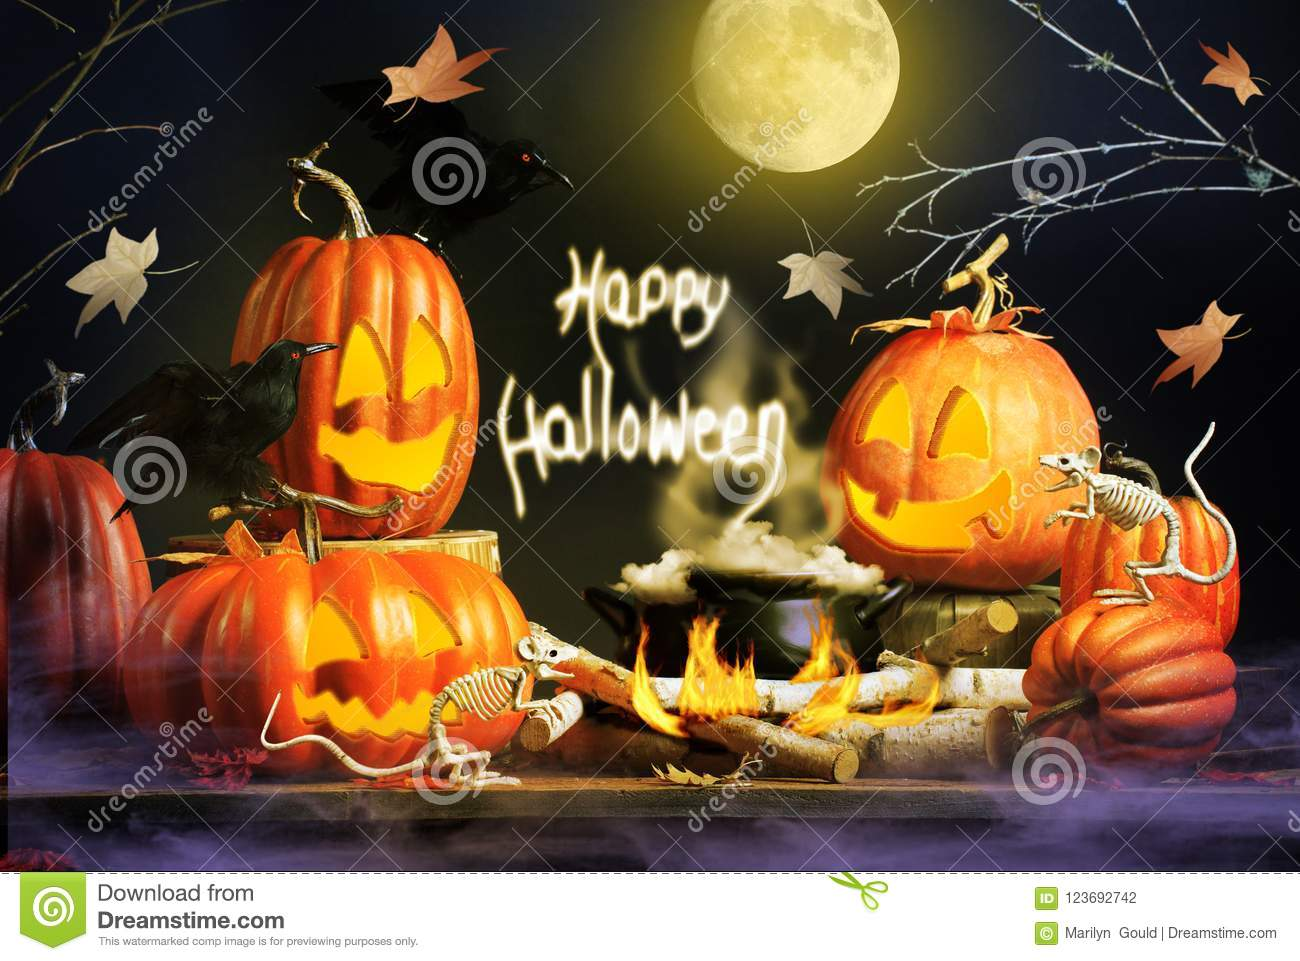 Halloween Greeting With Pumpkins And Skeleton Mice Stock Photo